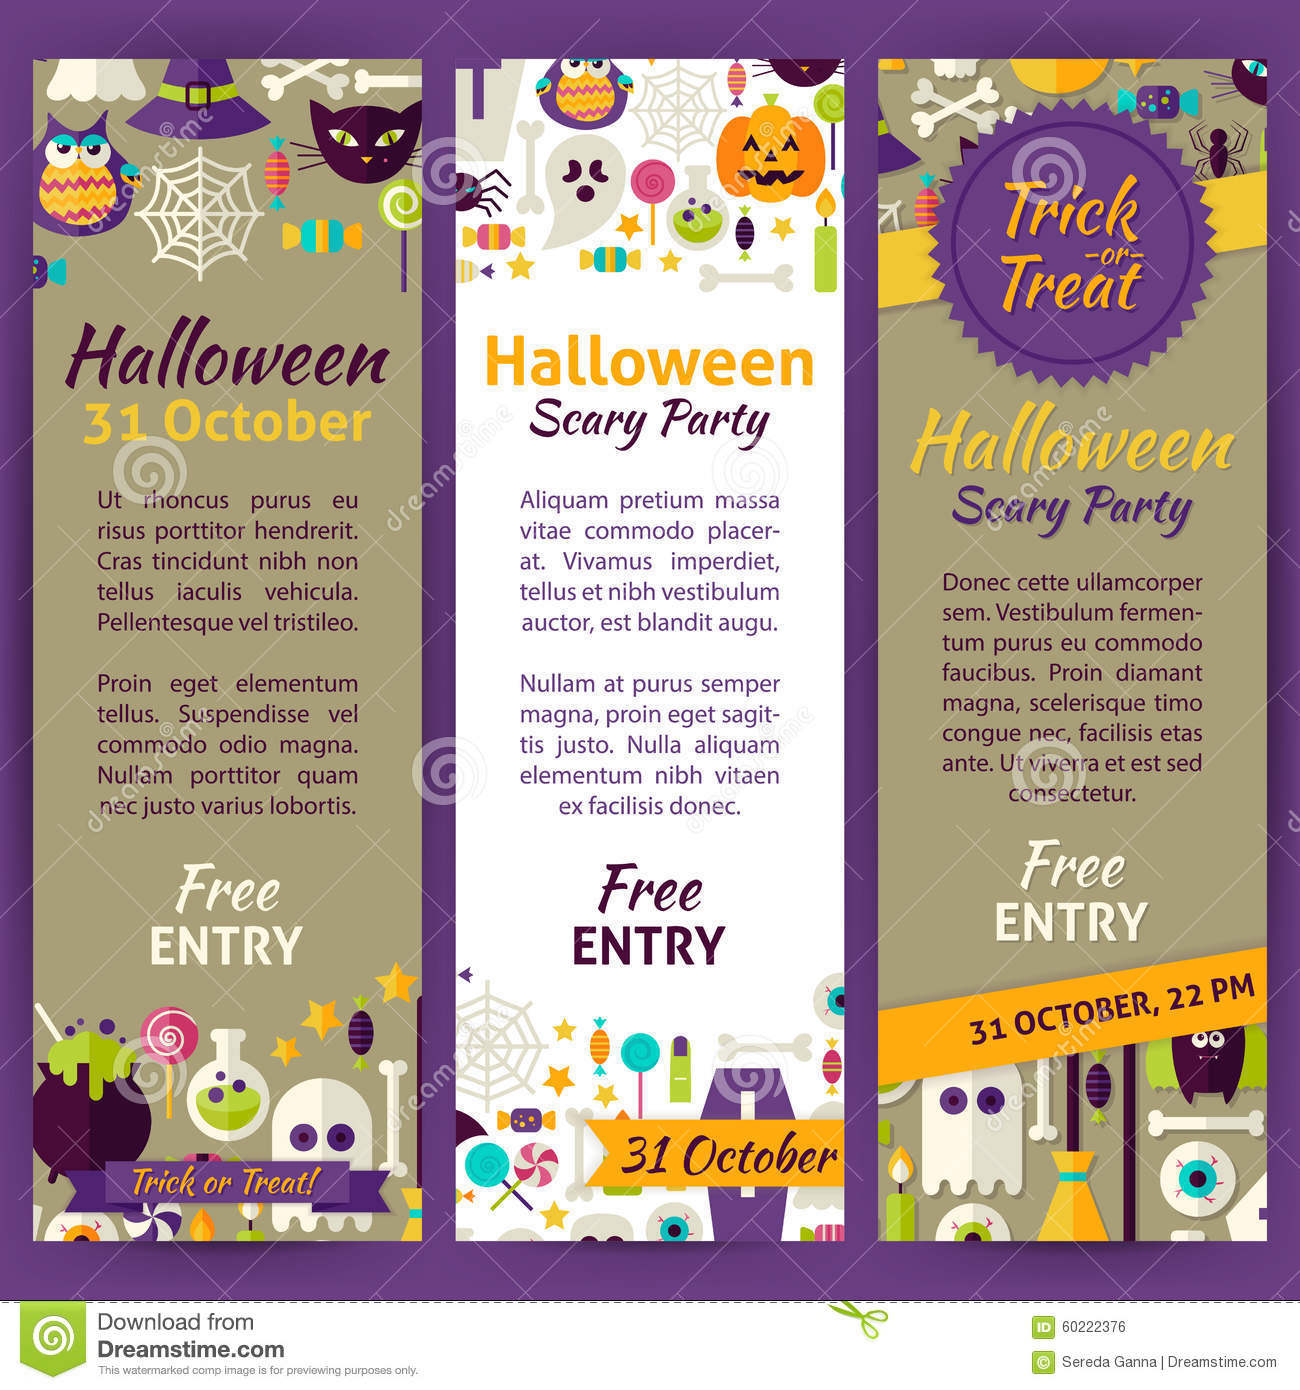 halloween party flyer invitation template stock vector image trick or treat halloween party invitation vector template flyer royalty stock image